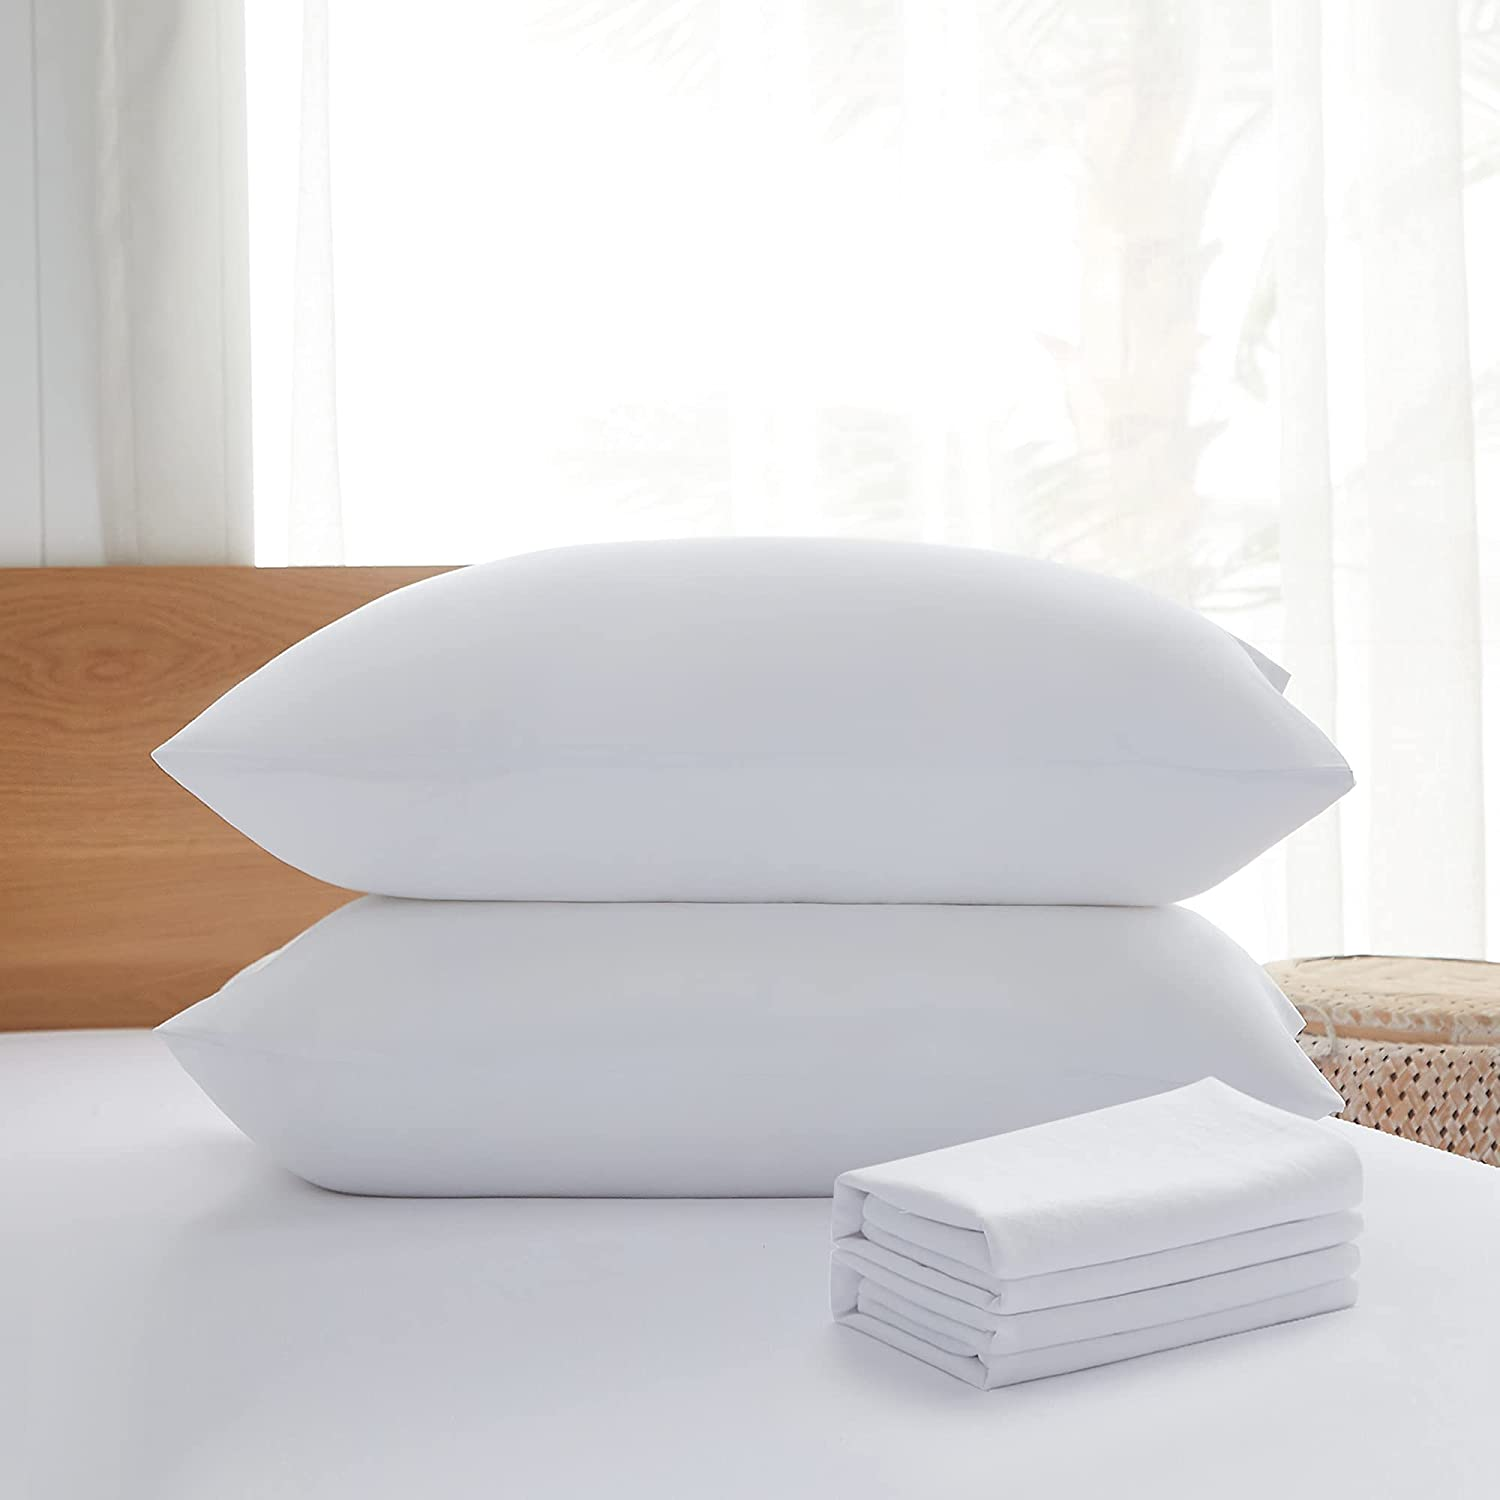 Acanva Bed Pillows 2 Pack Max 64% OFF Hotel Inserts Collection Luxury Soft Sacramento Mall f